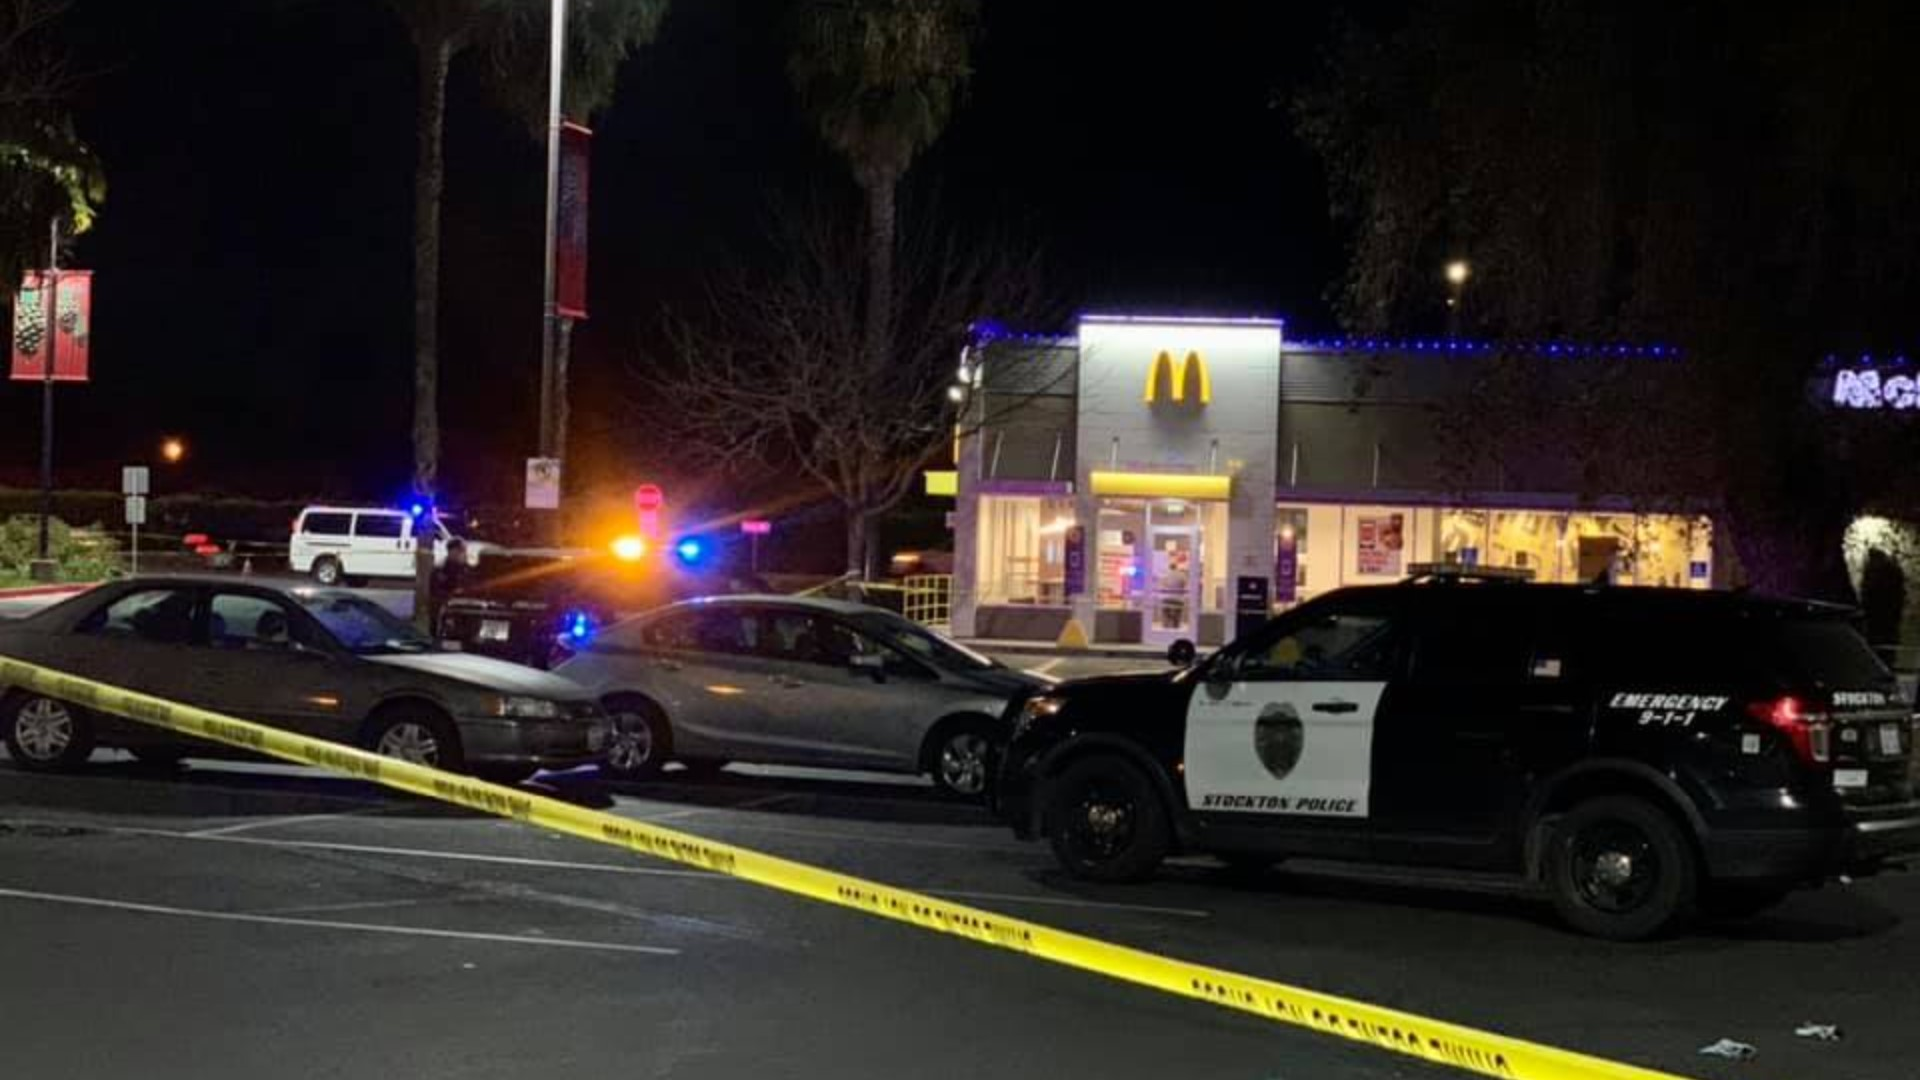 1 Dead After 3 Were Shot In Stockton Police Say Abc10 Com